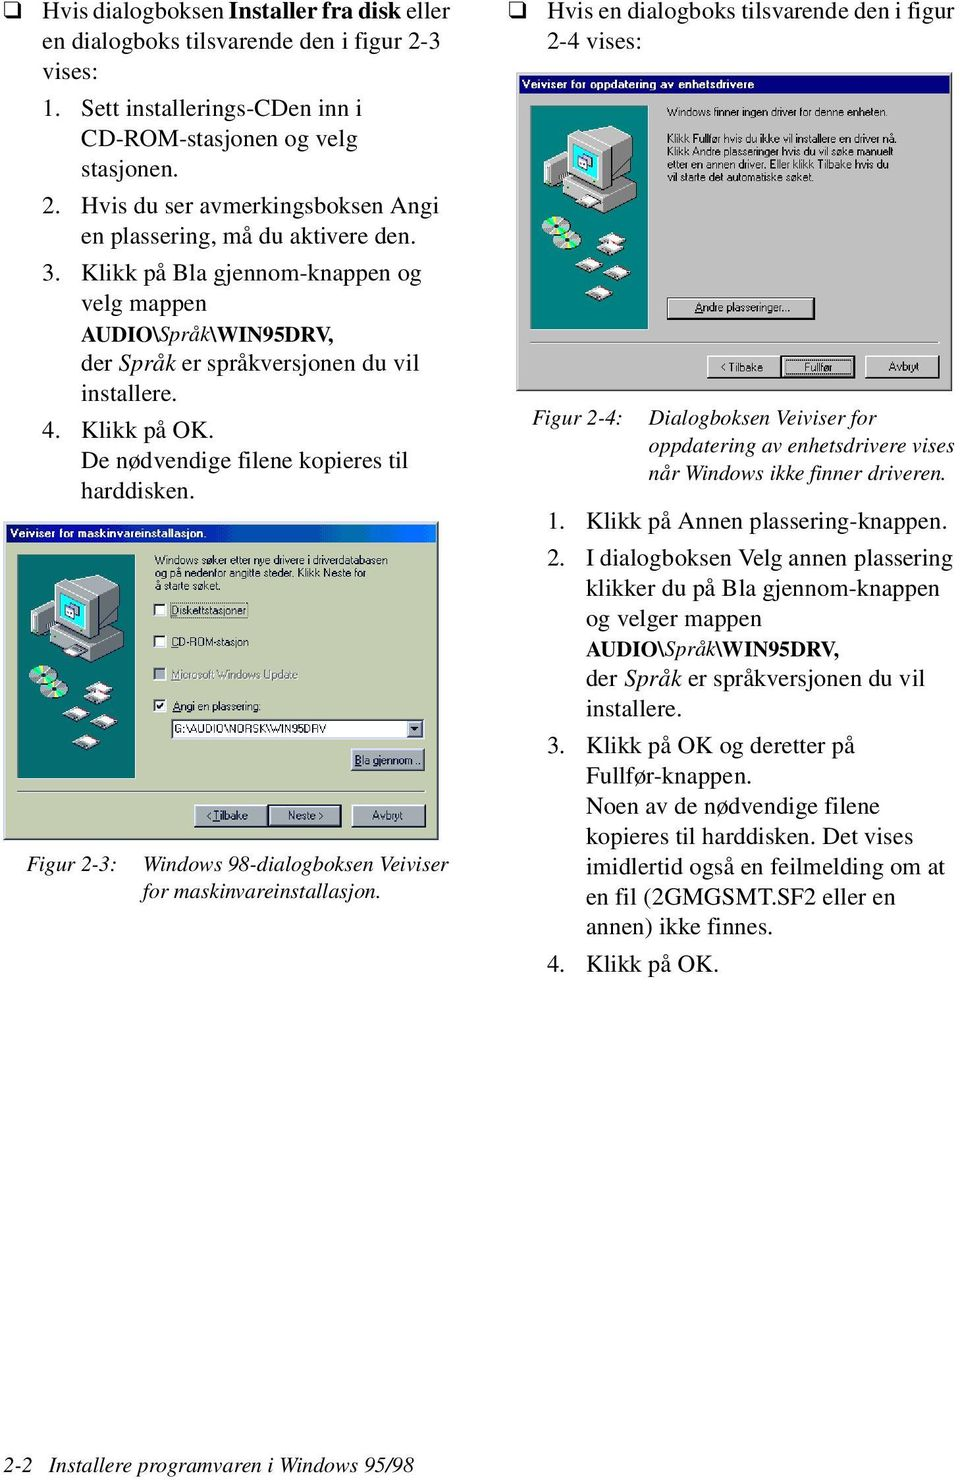 Figur 2-3: Windows 98-dialogboksen Veiviser for maskinvareinstallasjon.